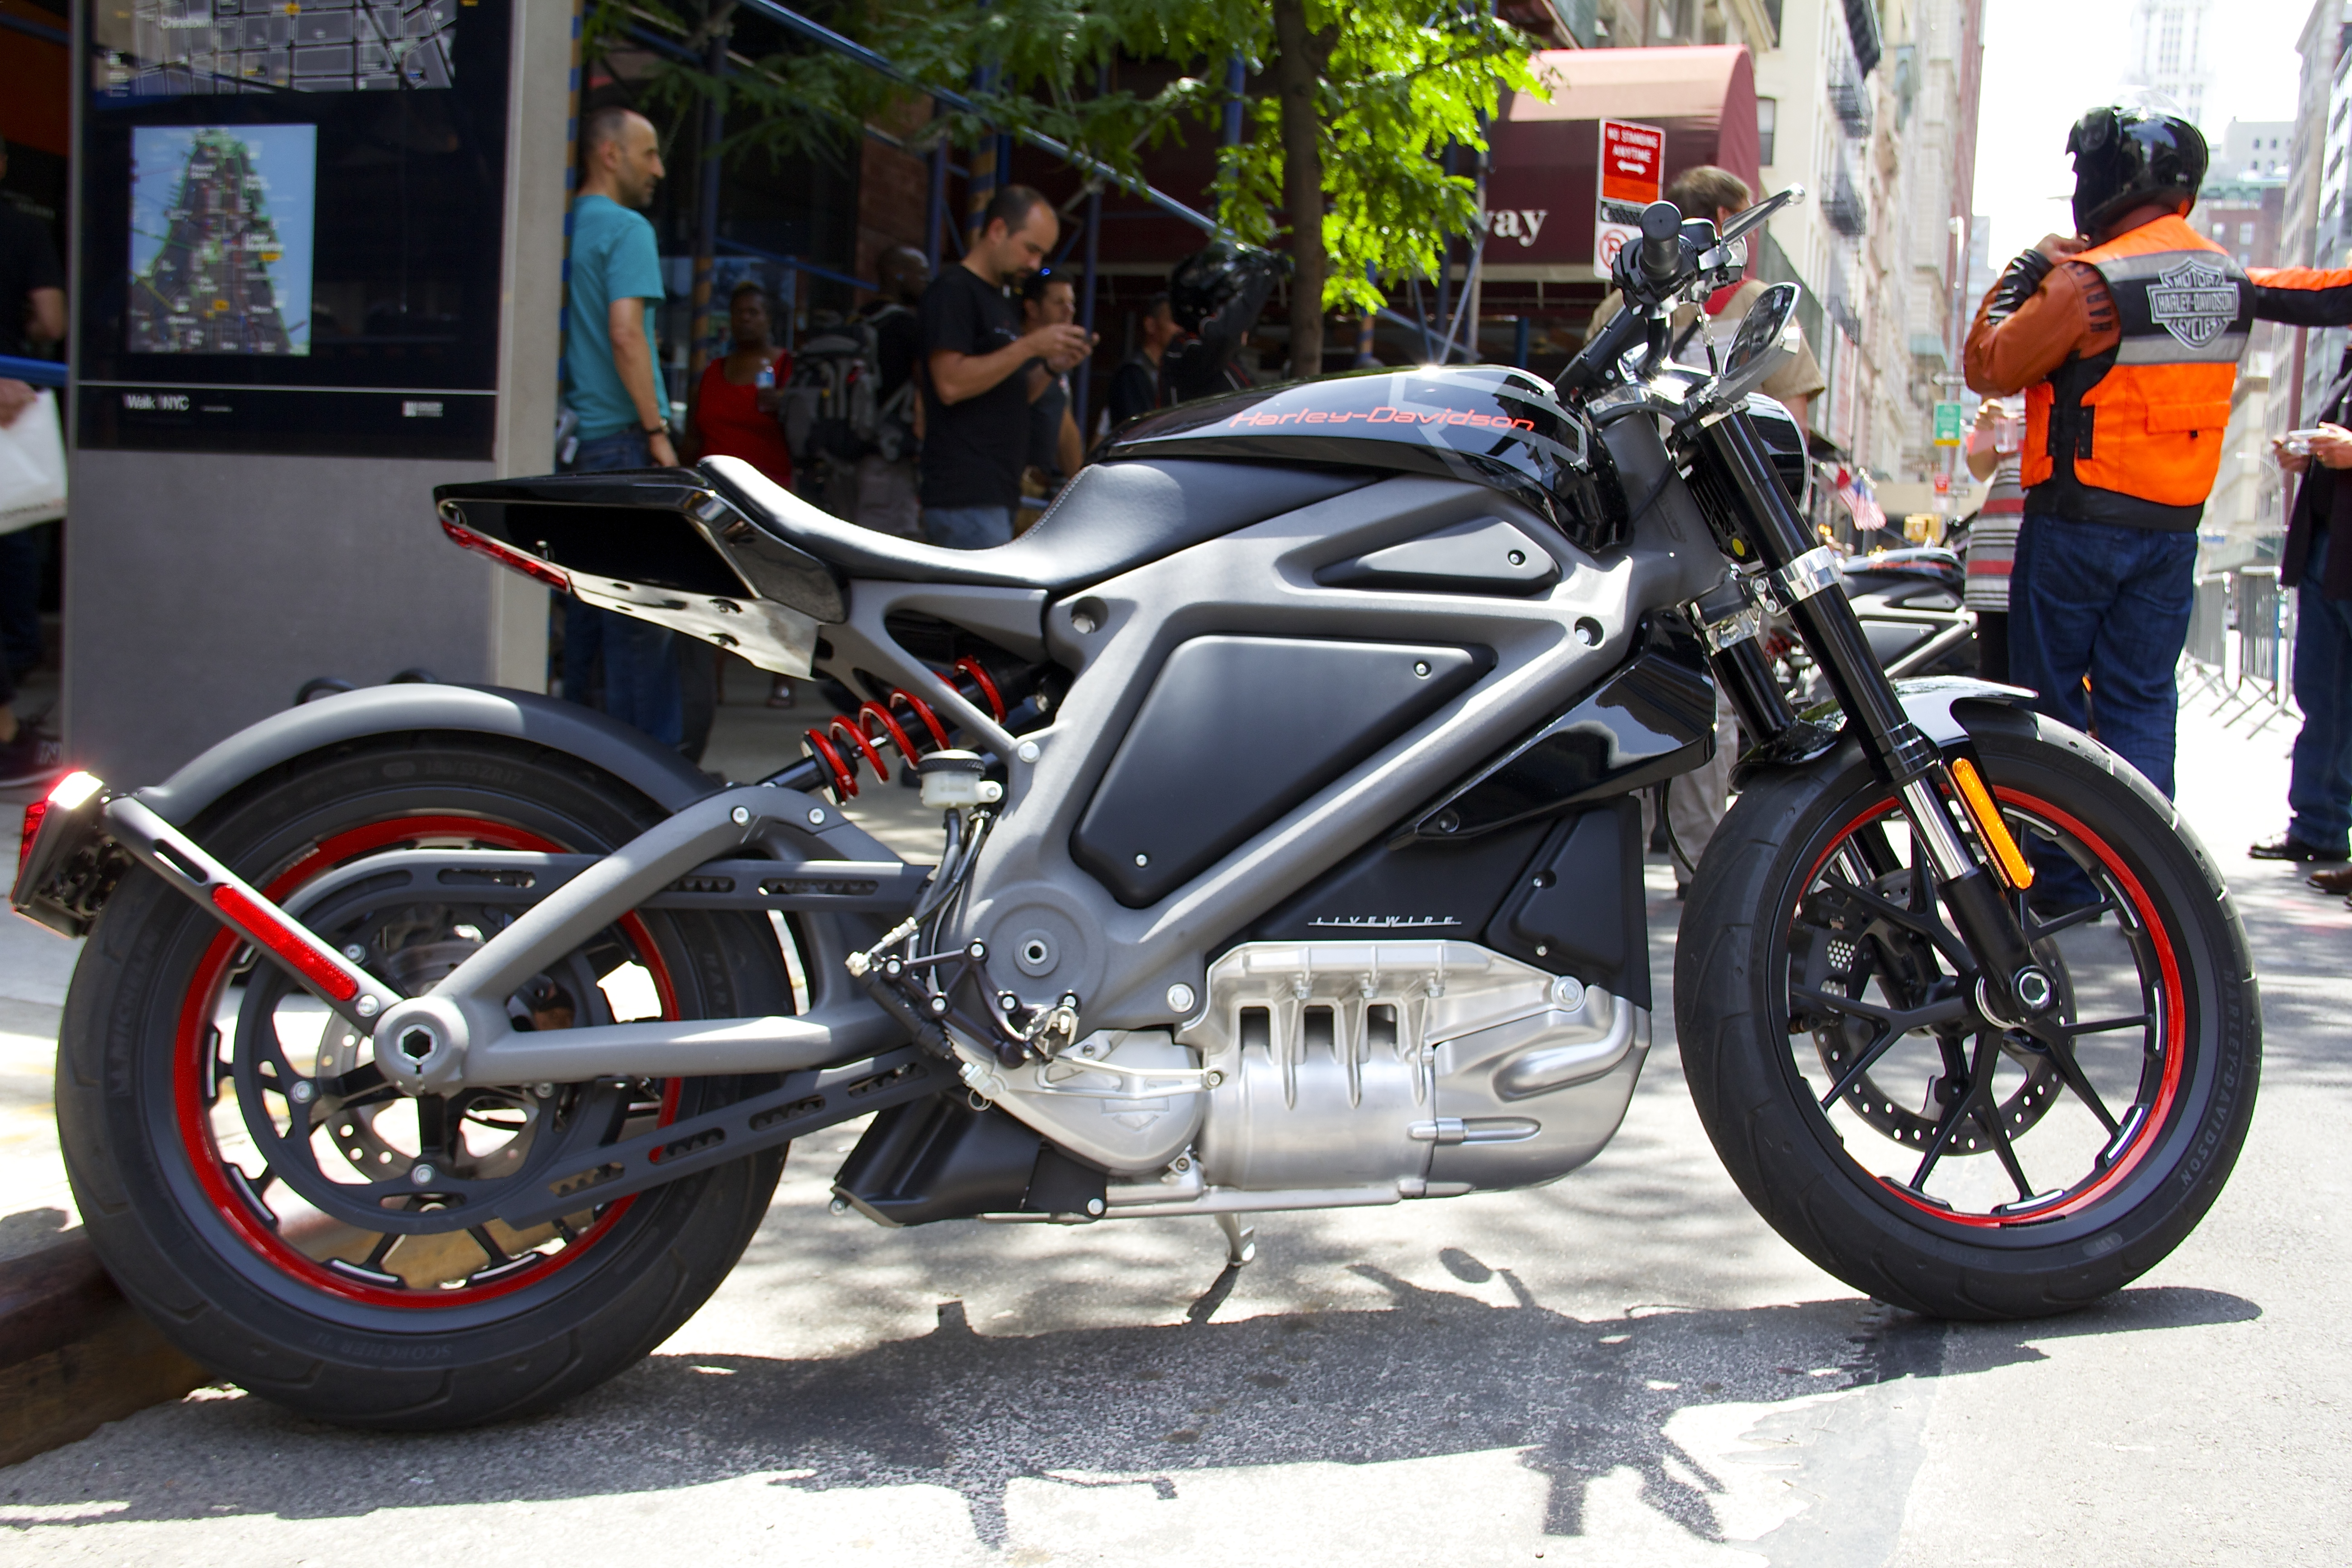 harley davidson s new all electric bike where s the noise. Black Bedroom Furniture Sets. Home Design Ideas